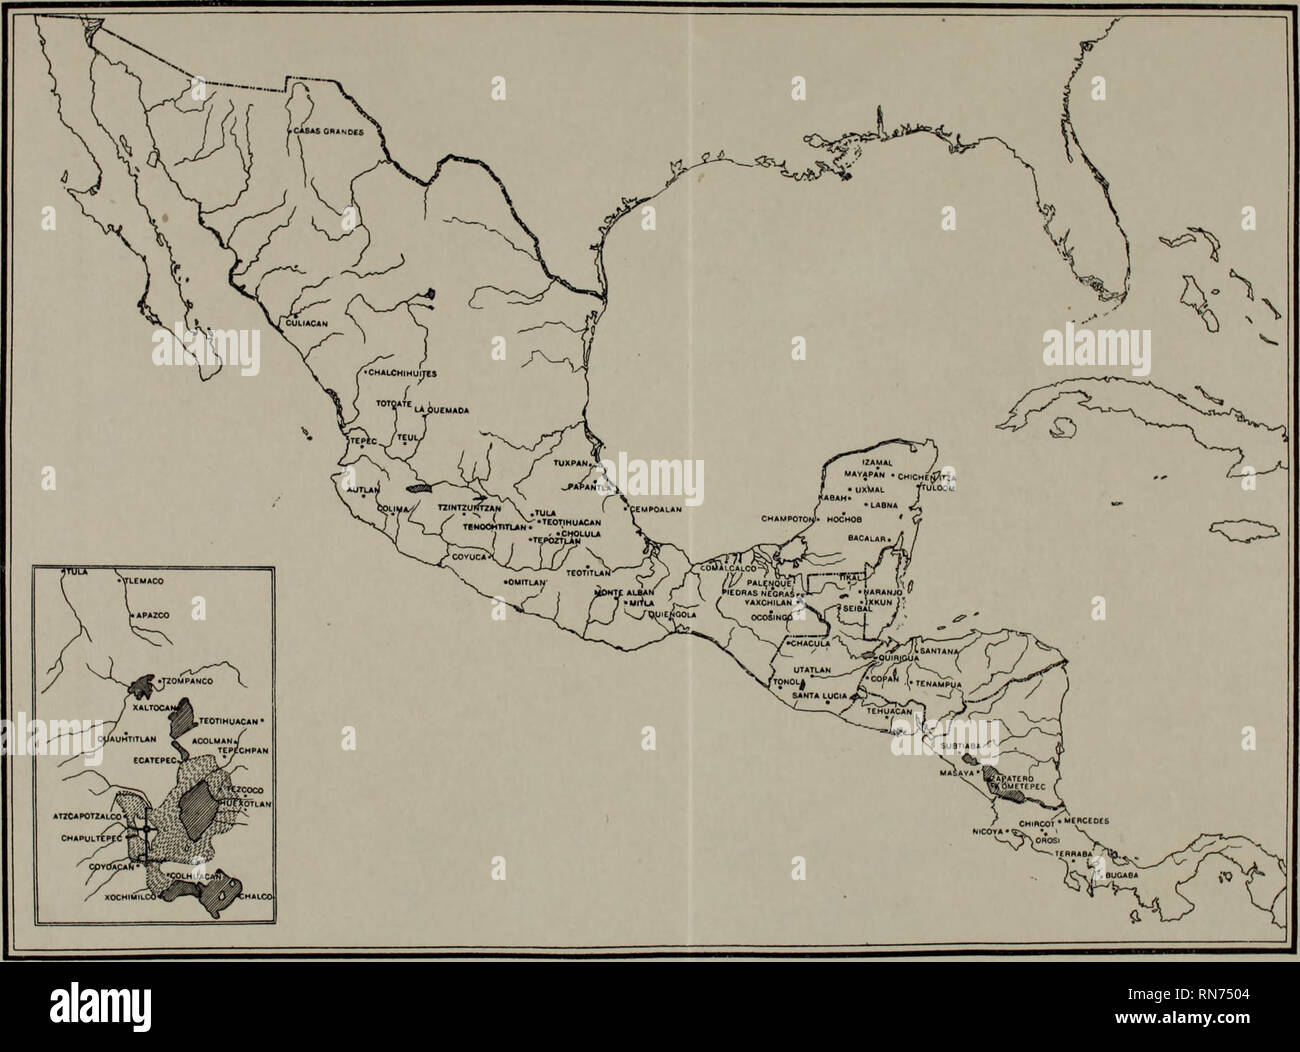 Ancient Civilizations Of Mexico And Central America Indians Of